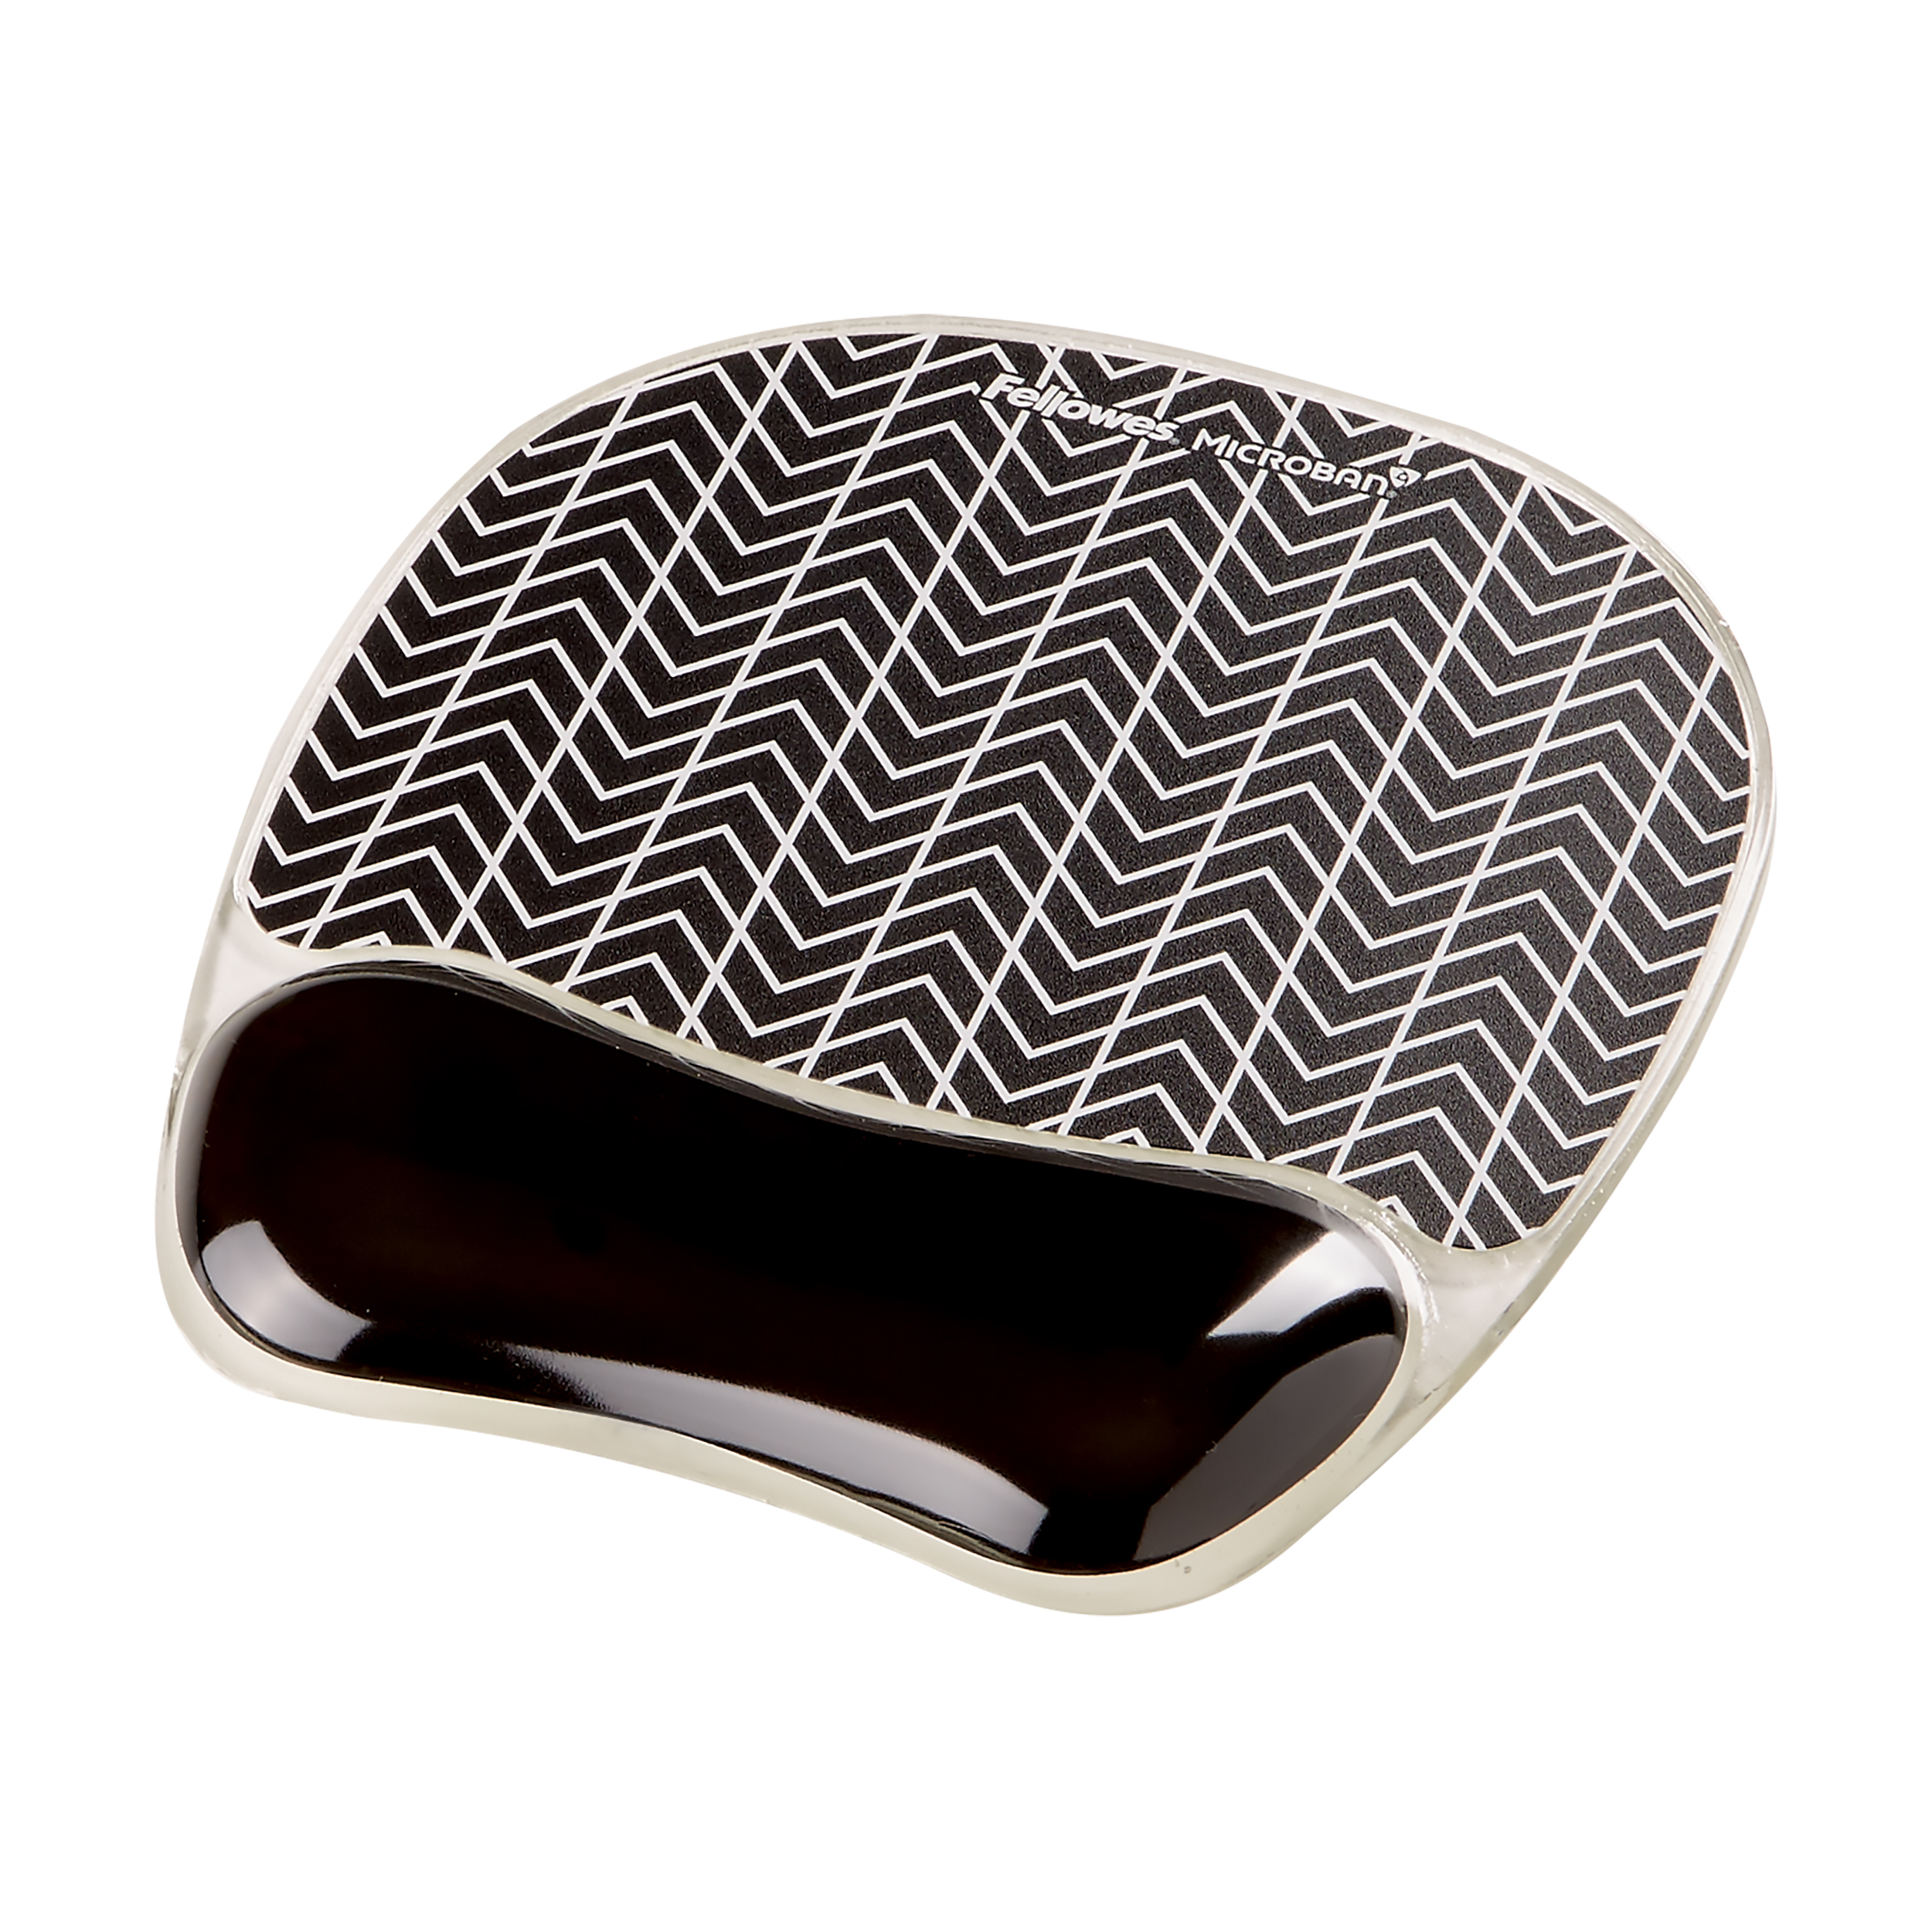 Keyboard wrist rest Fellowes PhotoGel Self Adjusting Mousepad Wrist Support Chevron Ref 9653401